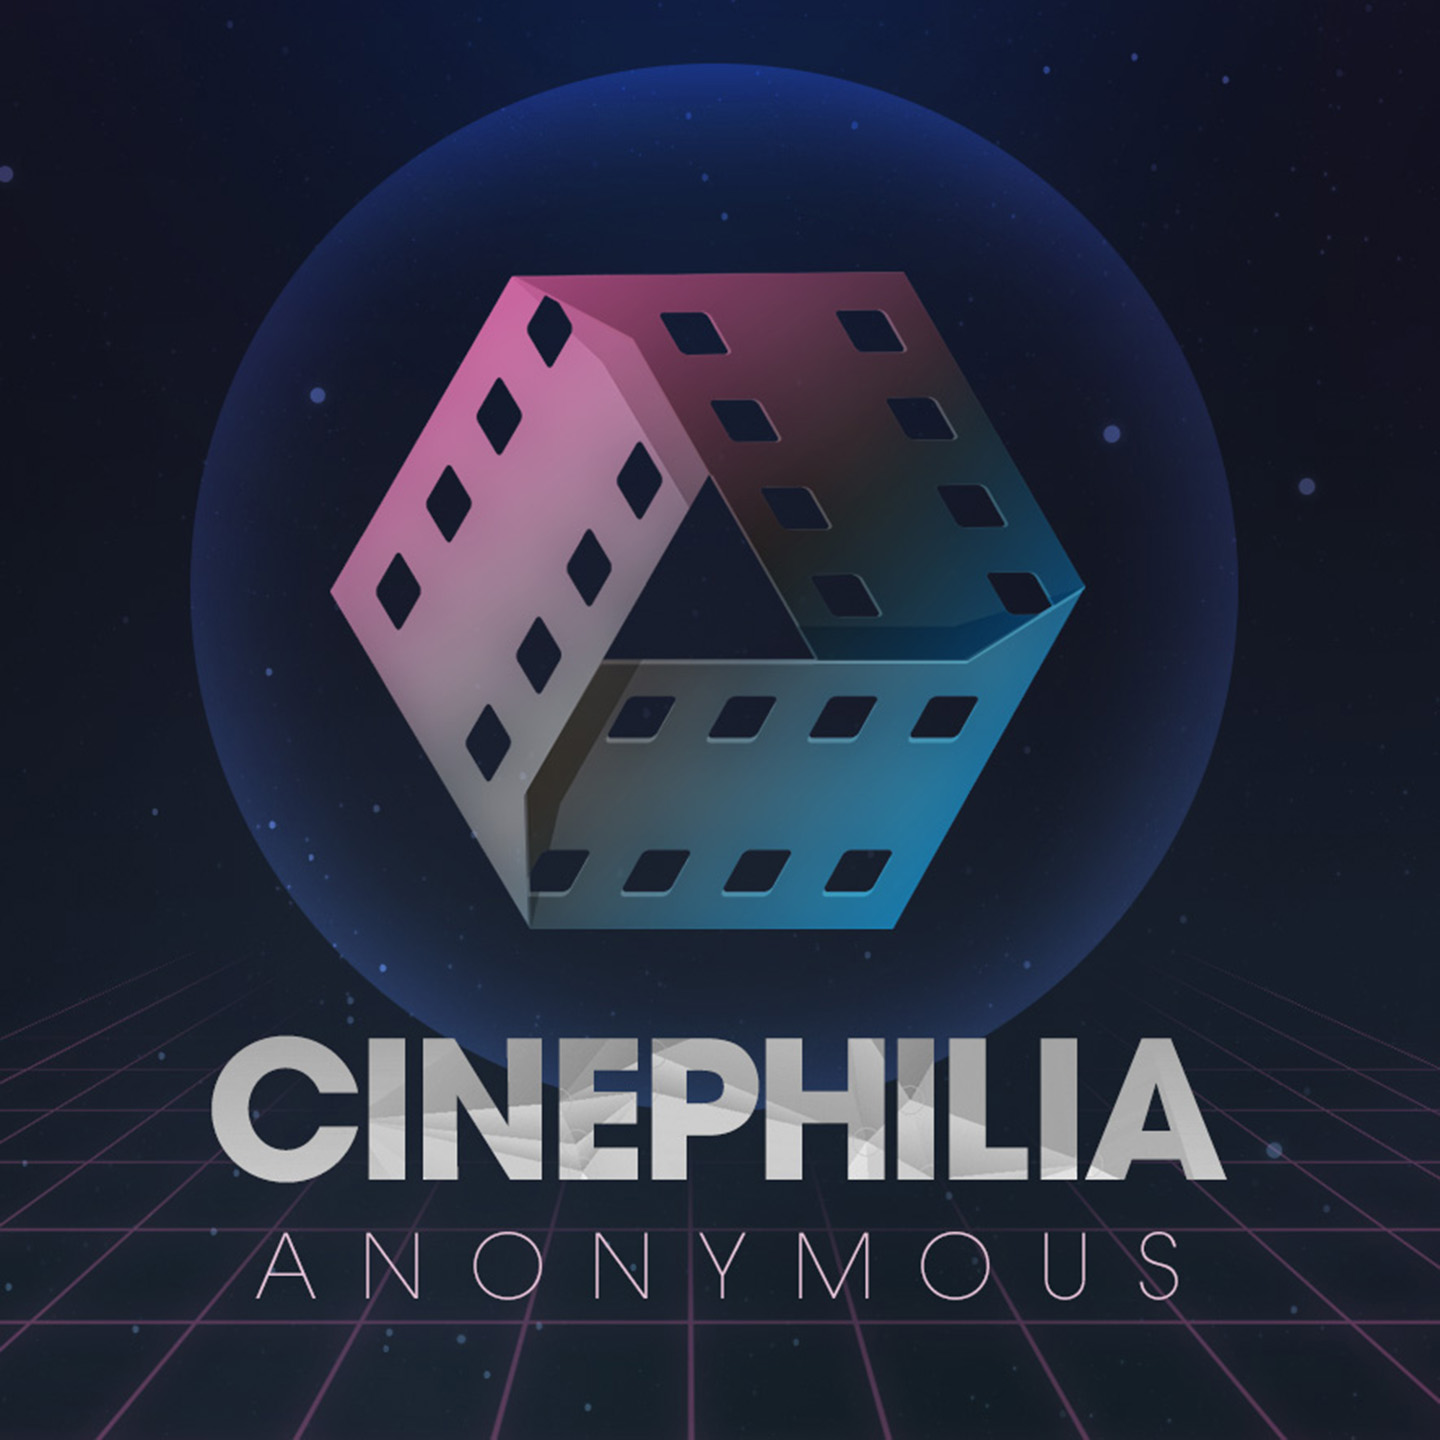 Listen - Cinephilia Anonymous